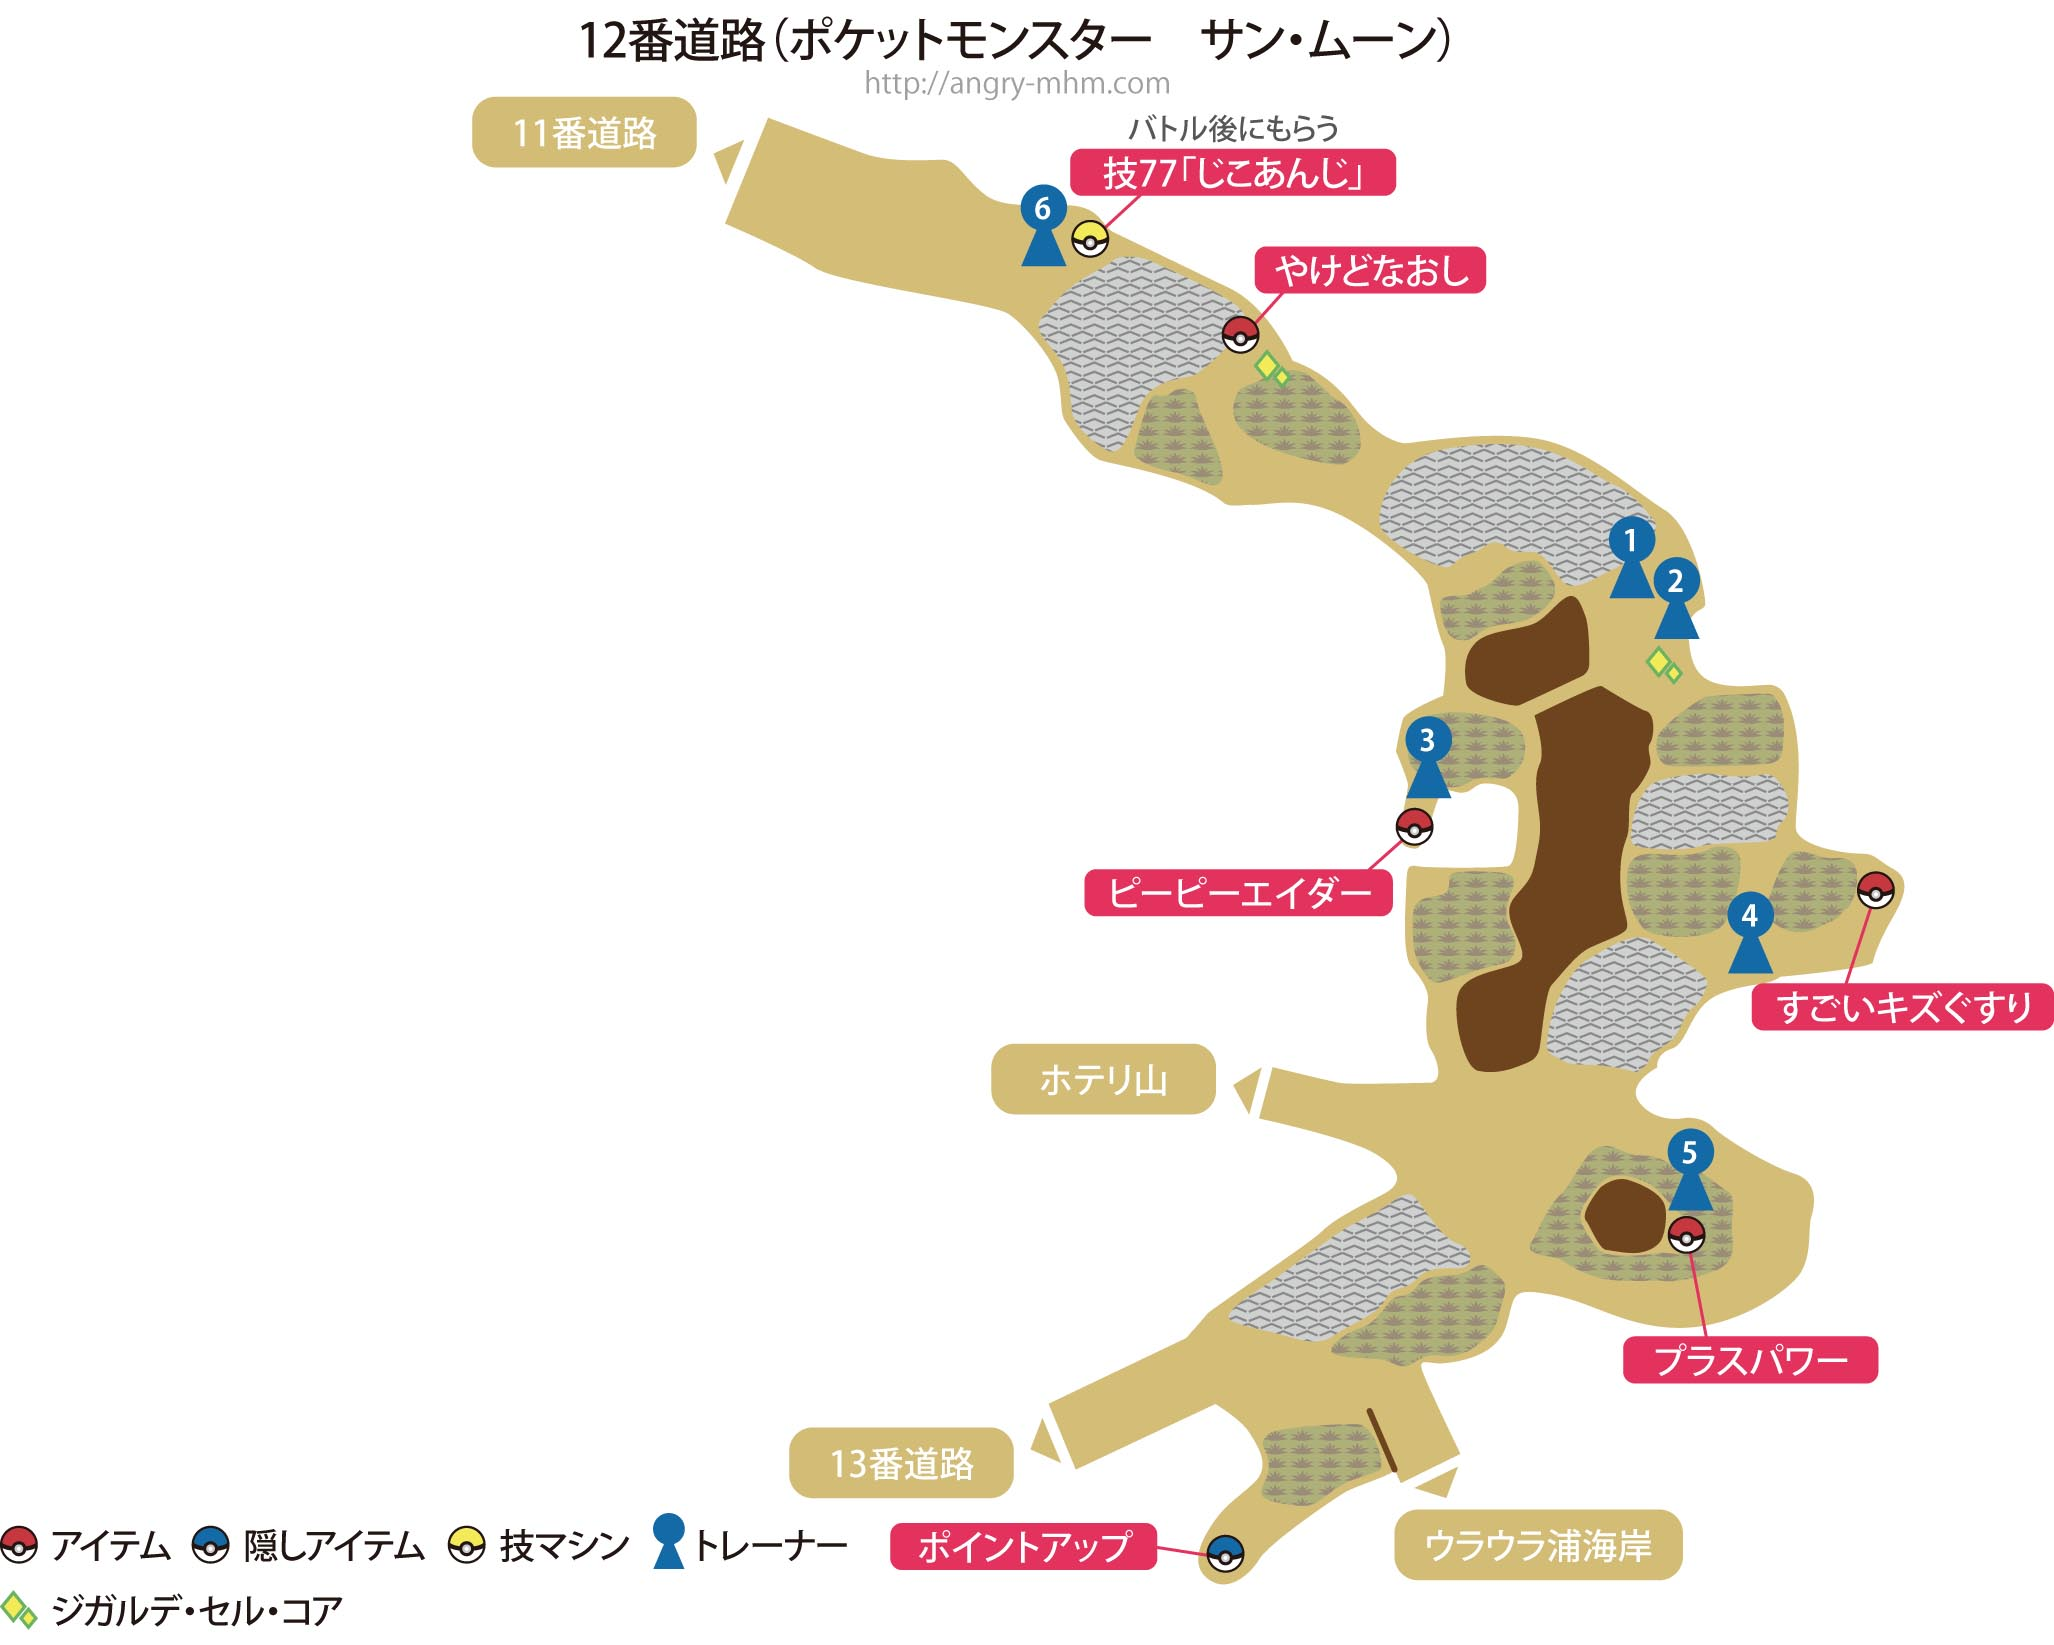 map-route-12